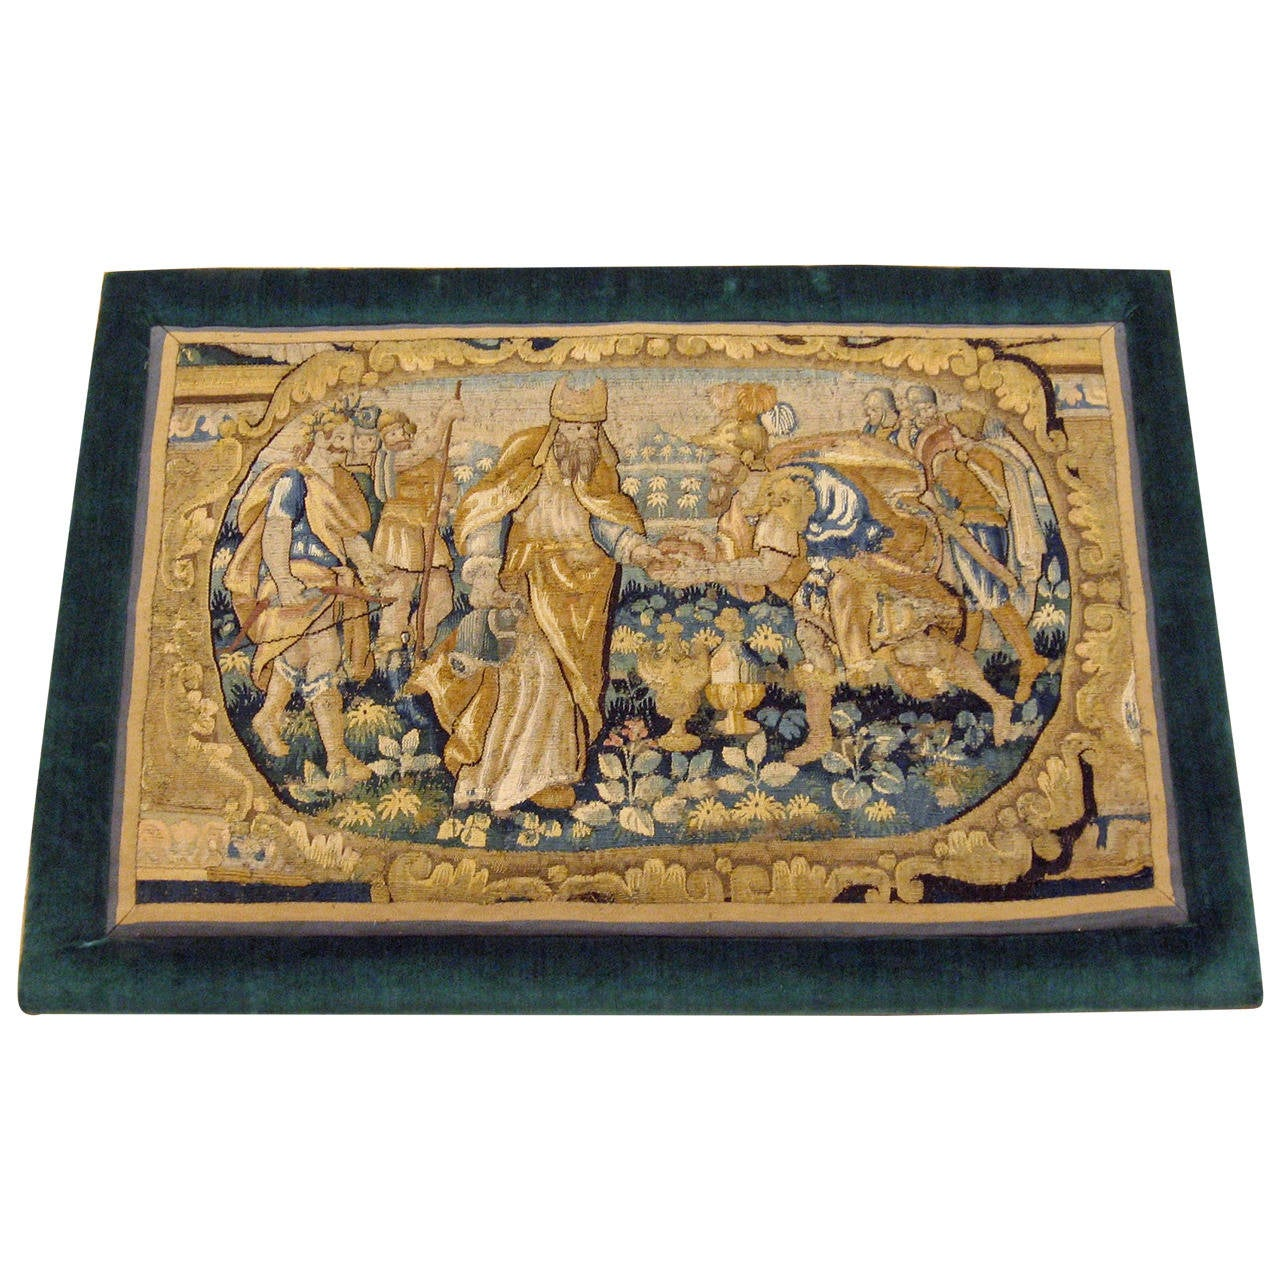 Antique 18th Century Flemish Historical Tapestry with a King, on a Velvet Frame